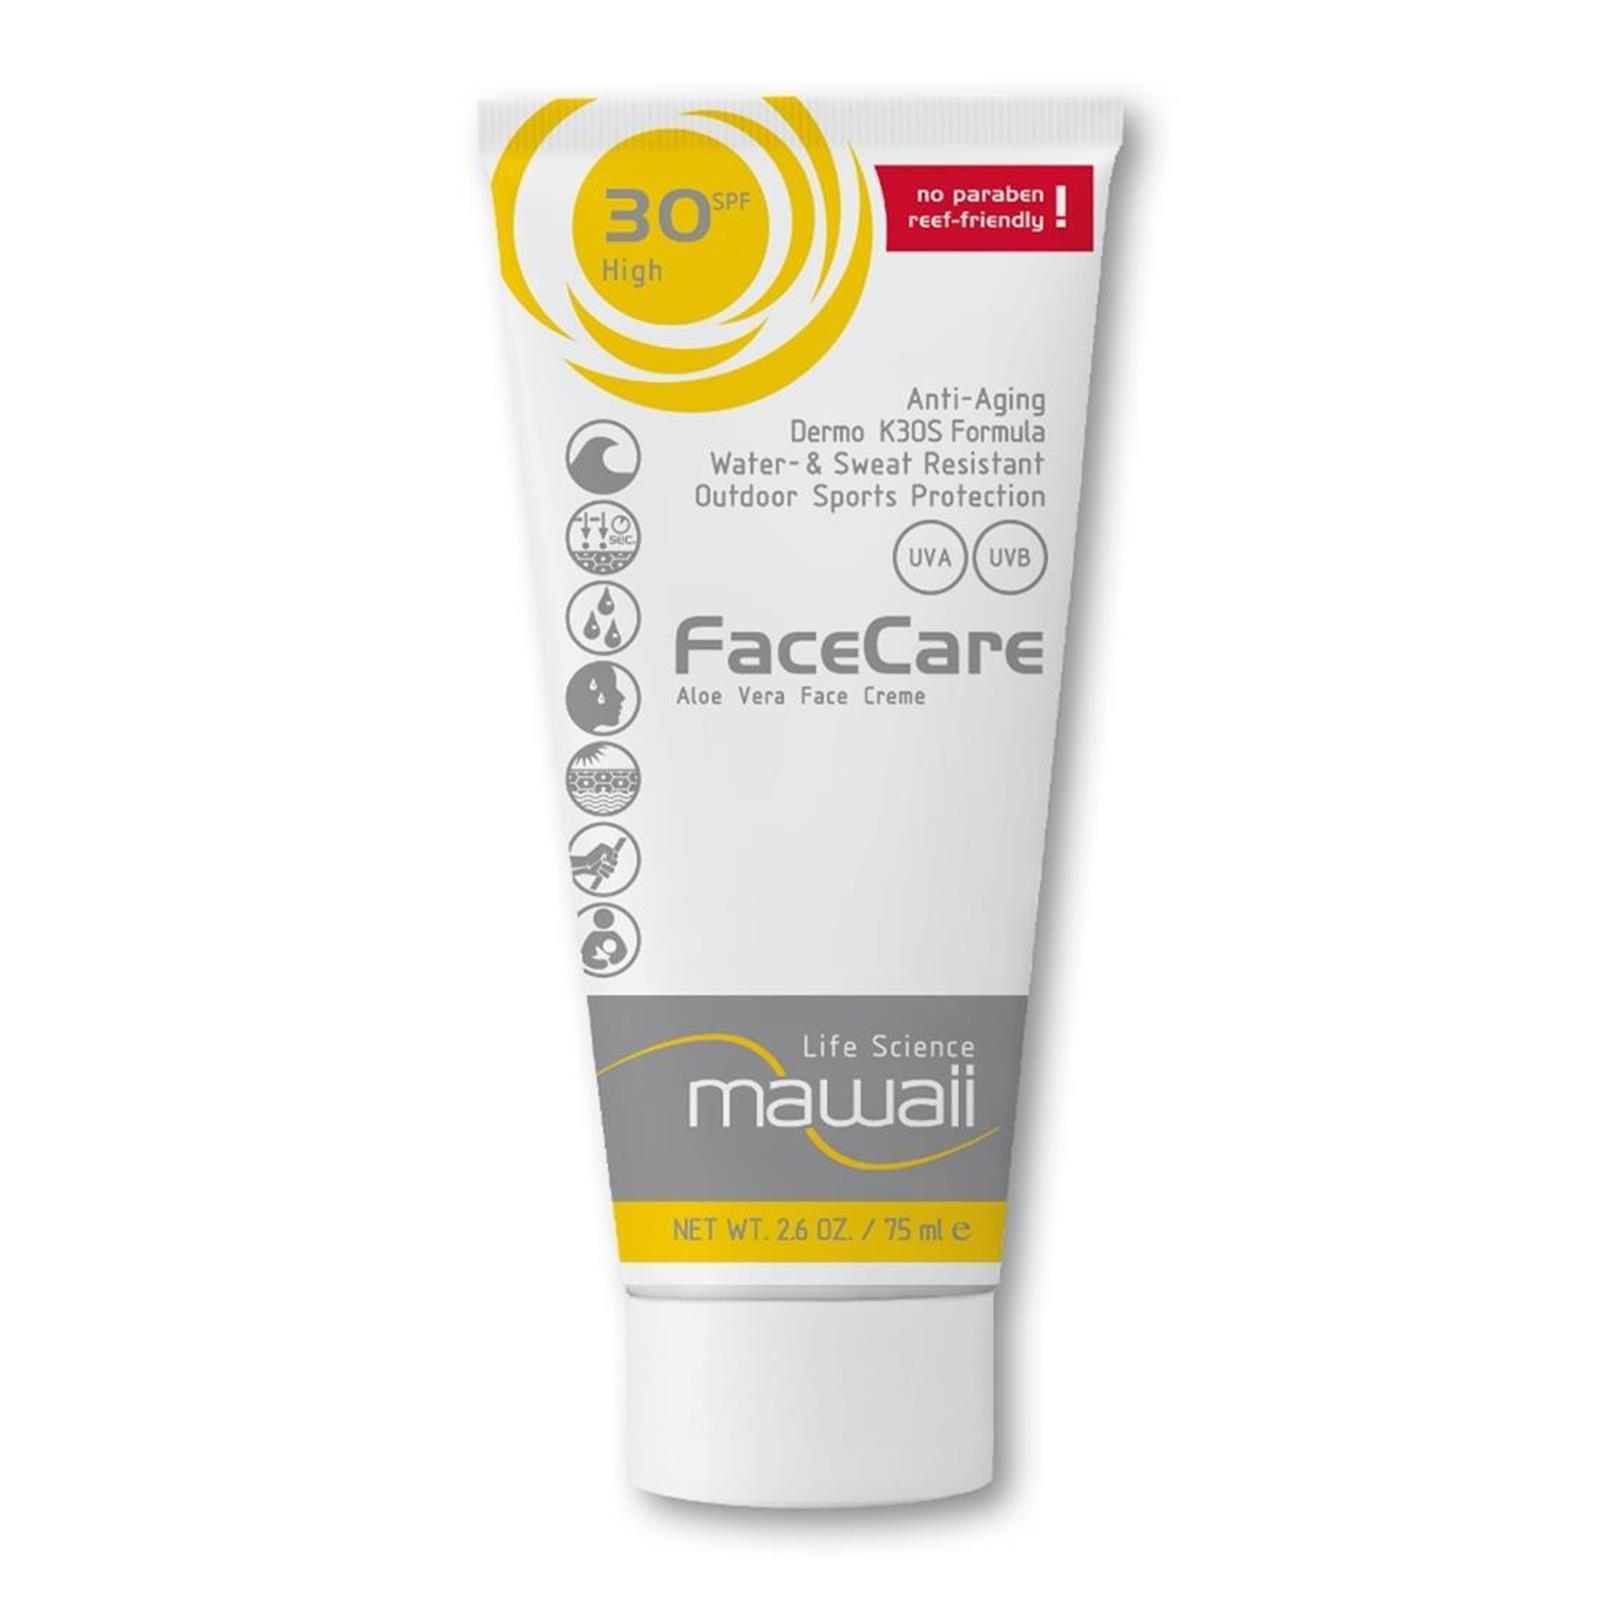 mawaii FaceCare SPF 30  K3OS Formula 75ml